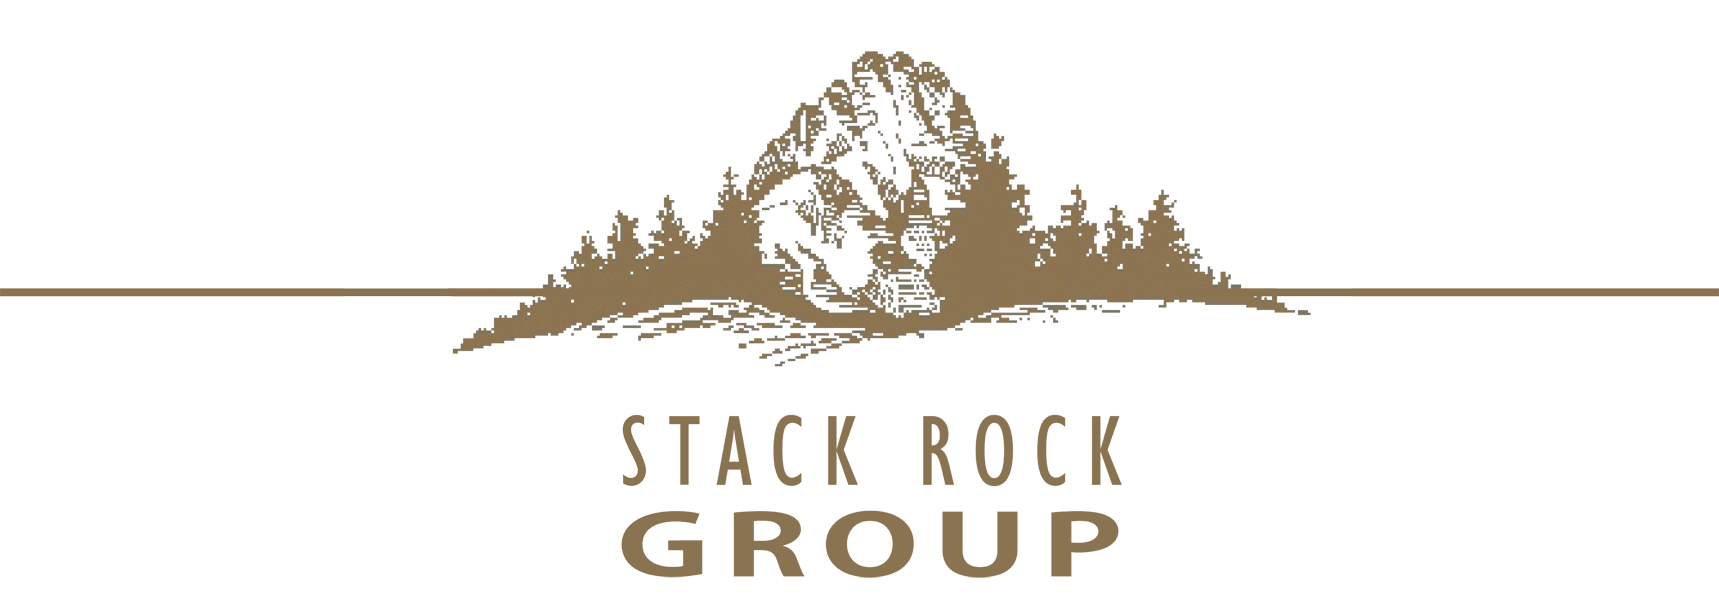 Stack Rock Group - Landscape Architecture and Planning